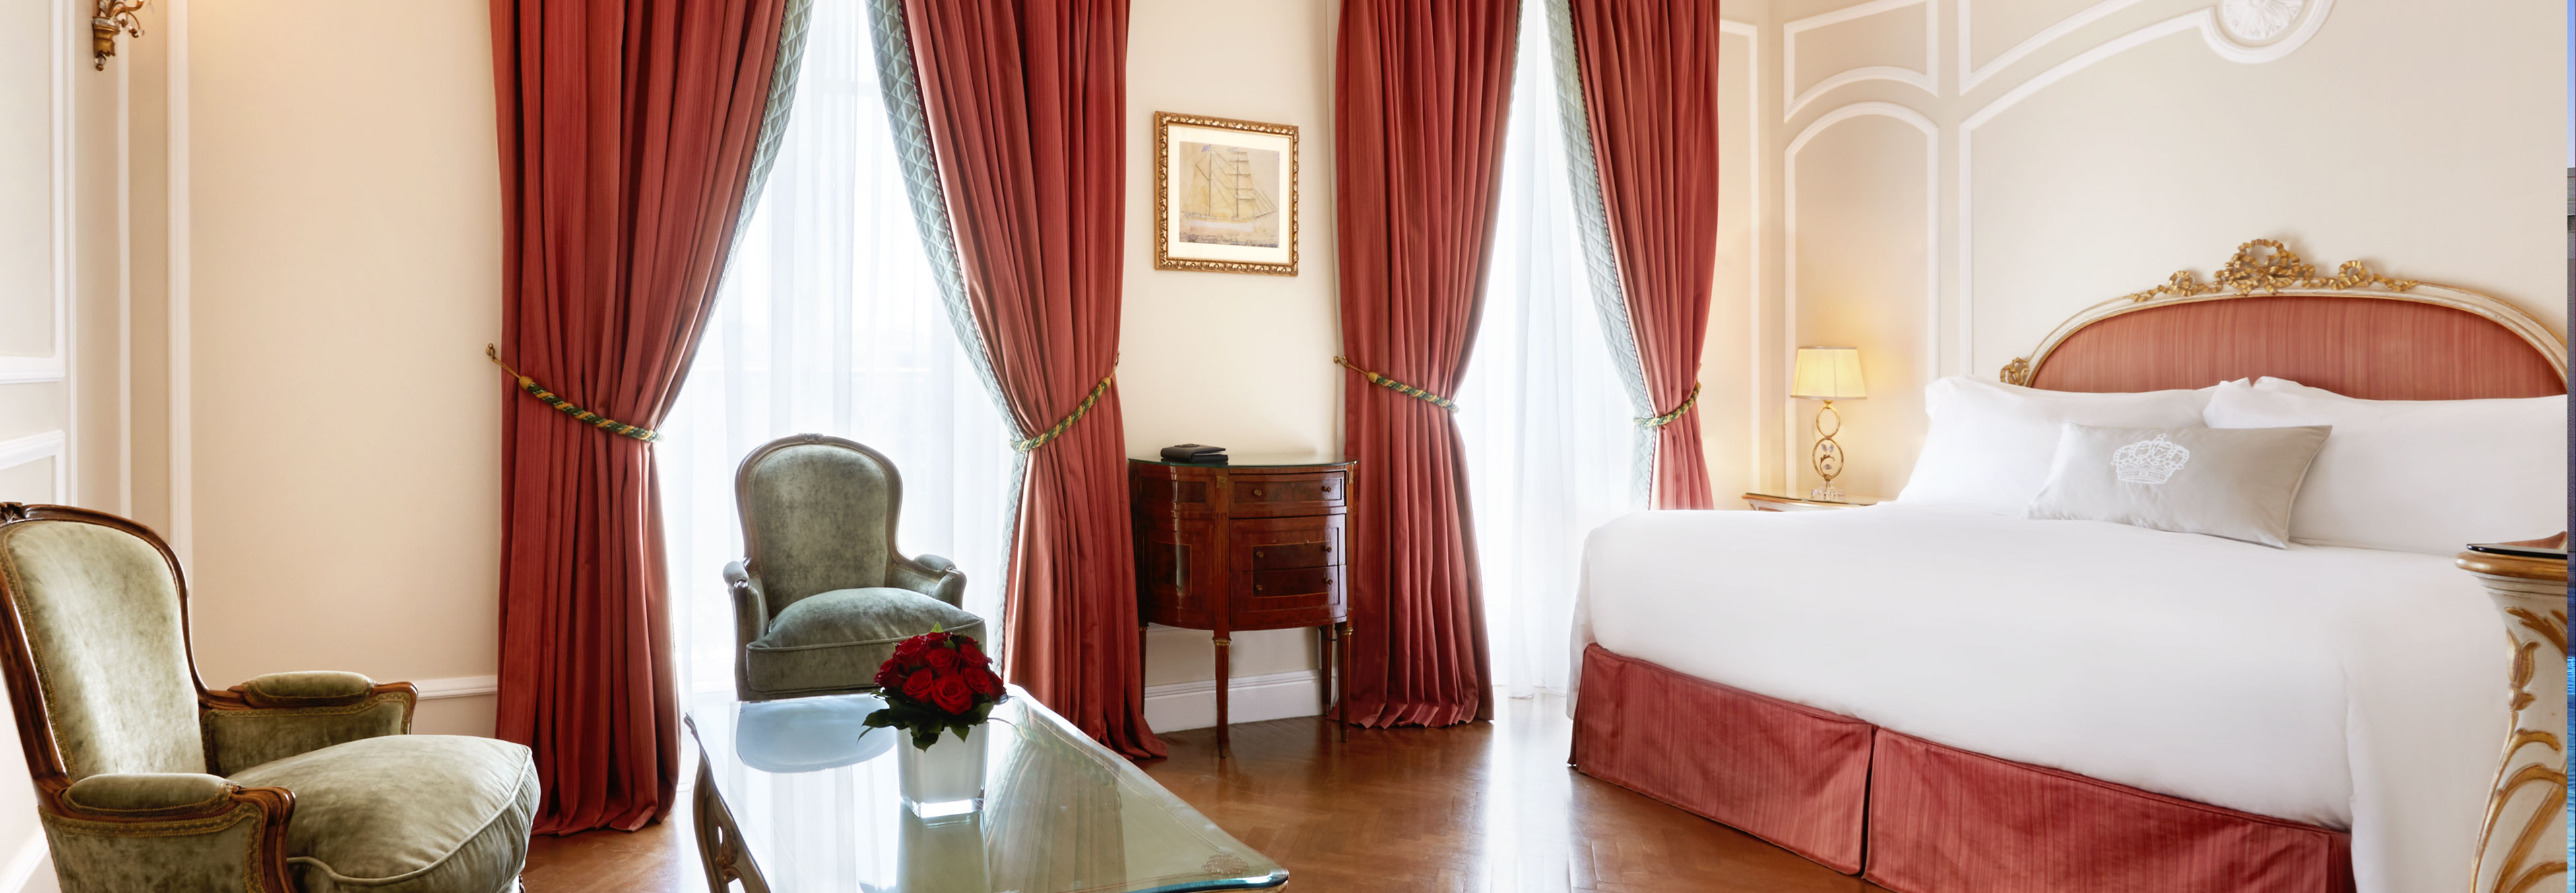 Bad King George Hotel - Luxury Greece Holiday - Ker & Downey